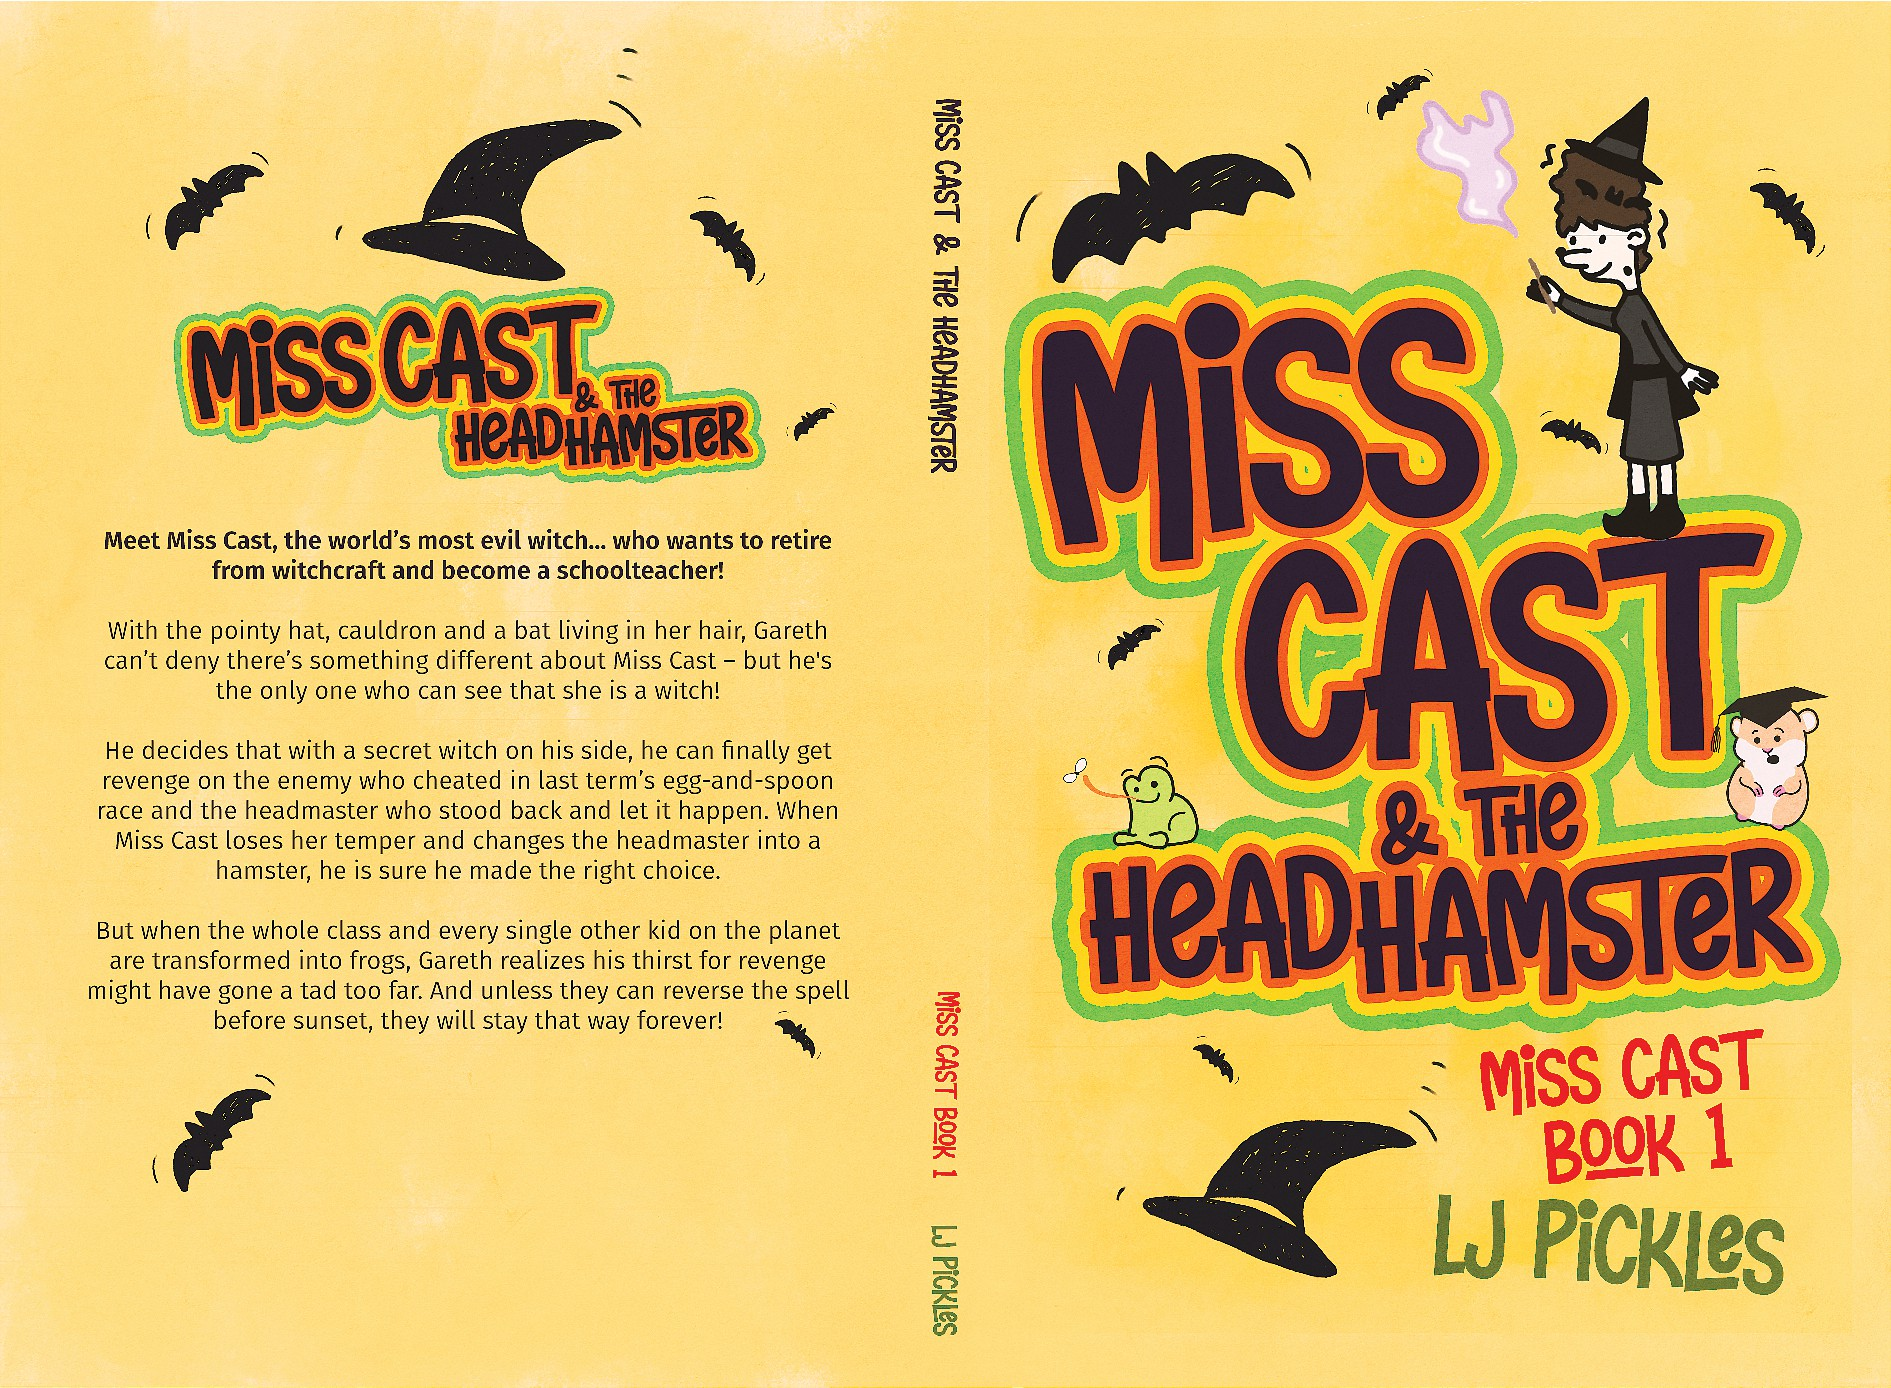 Funny kid's book cover - about a retired witch causing mayhem in school